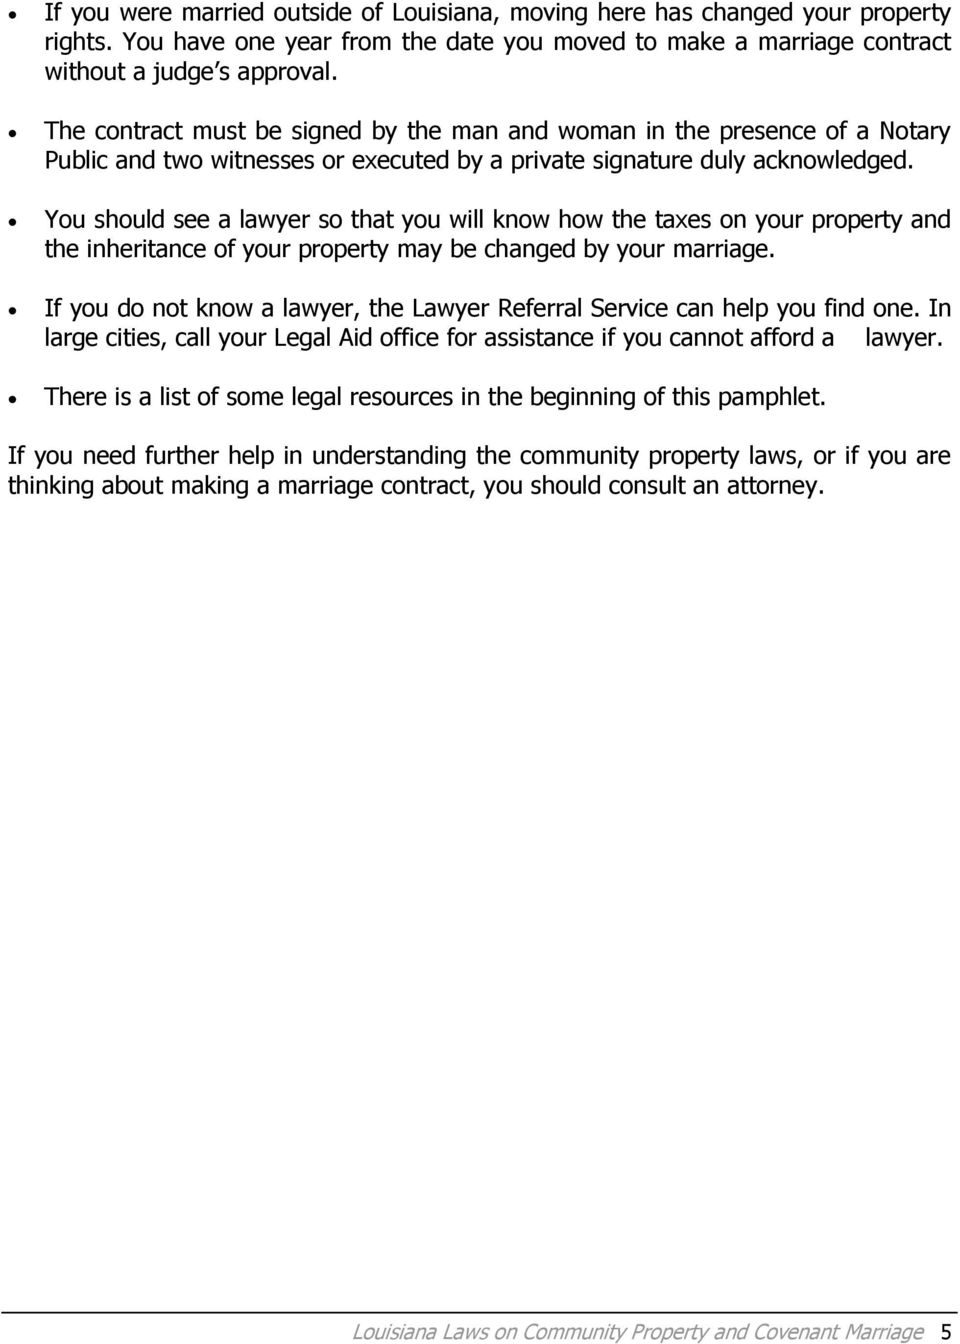 You should see a lawyer so that you will know how the taxes on your property and the inheritance of your property may be changed by your marriage.